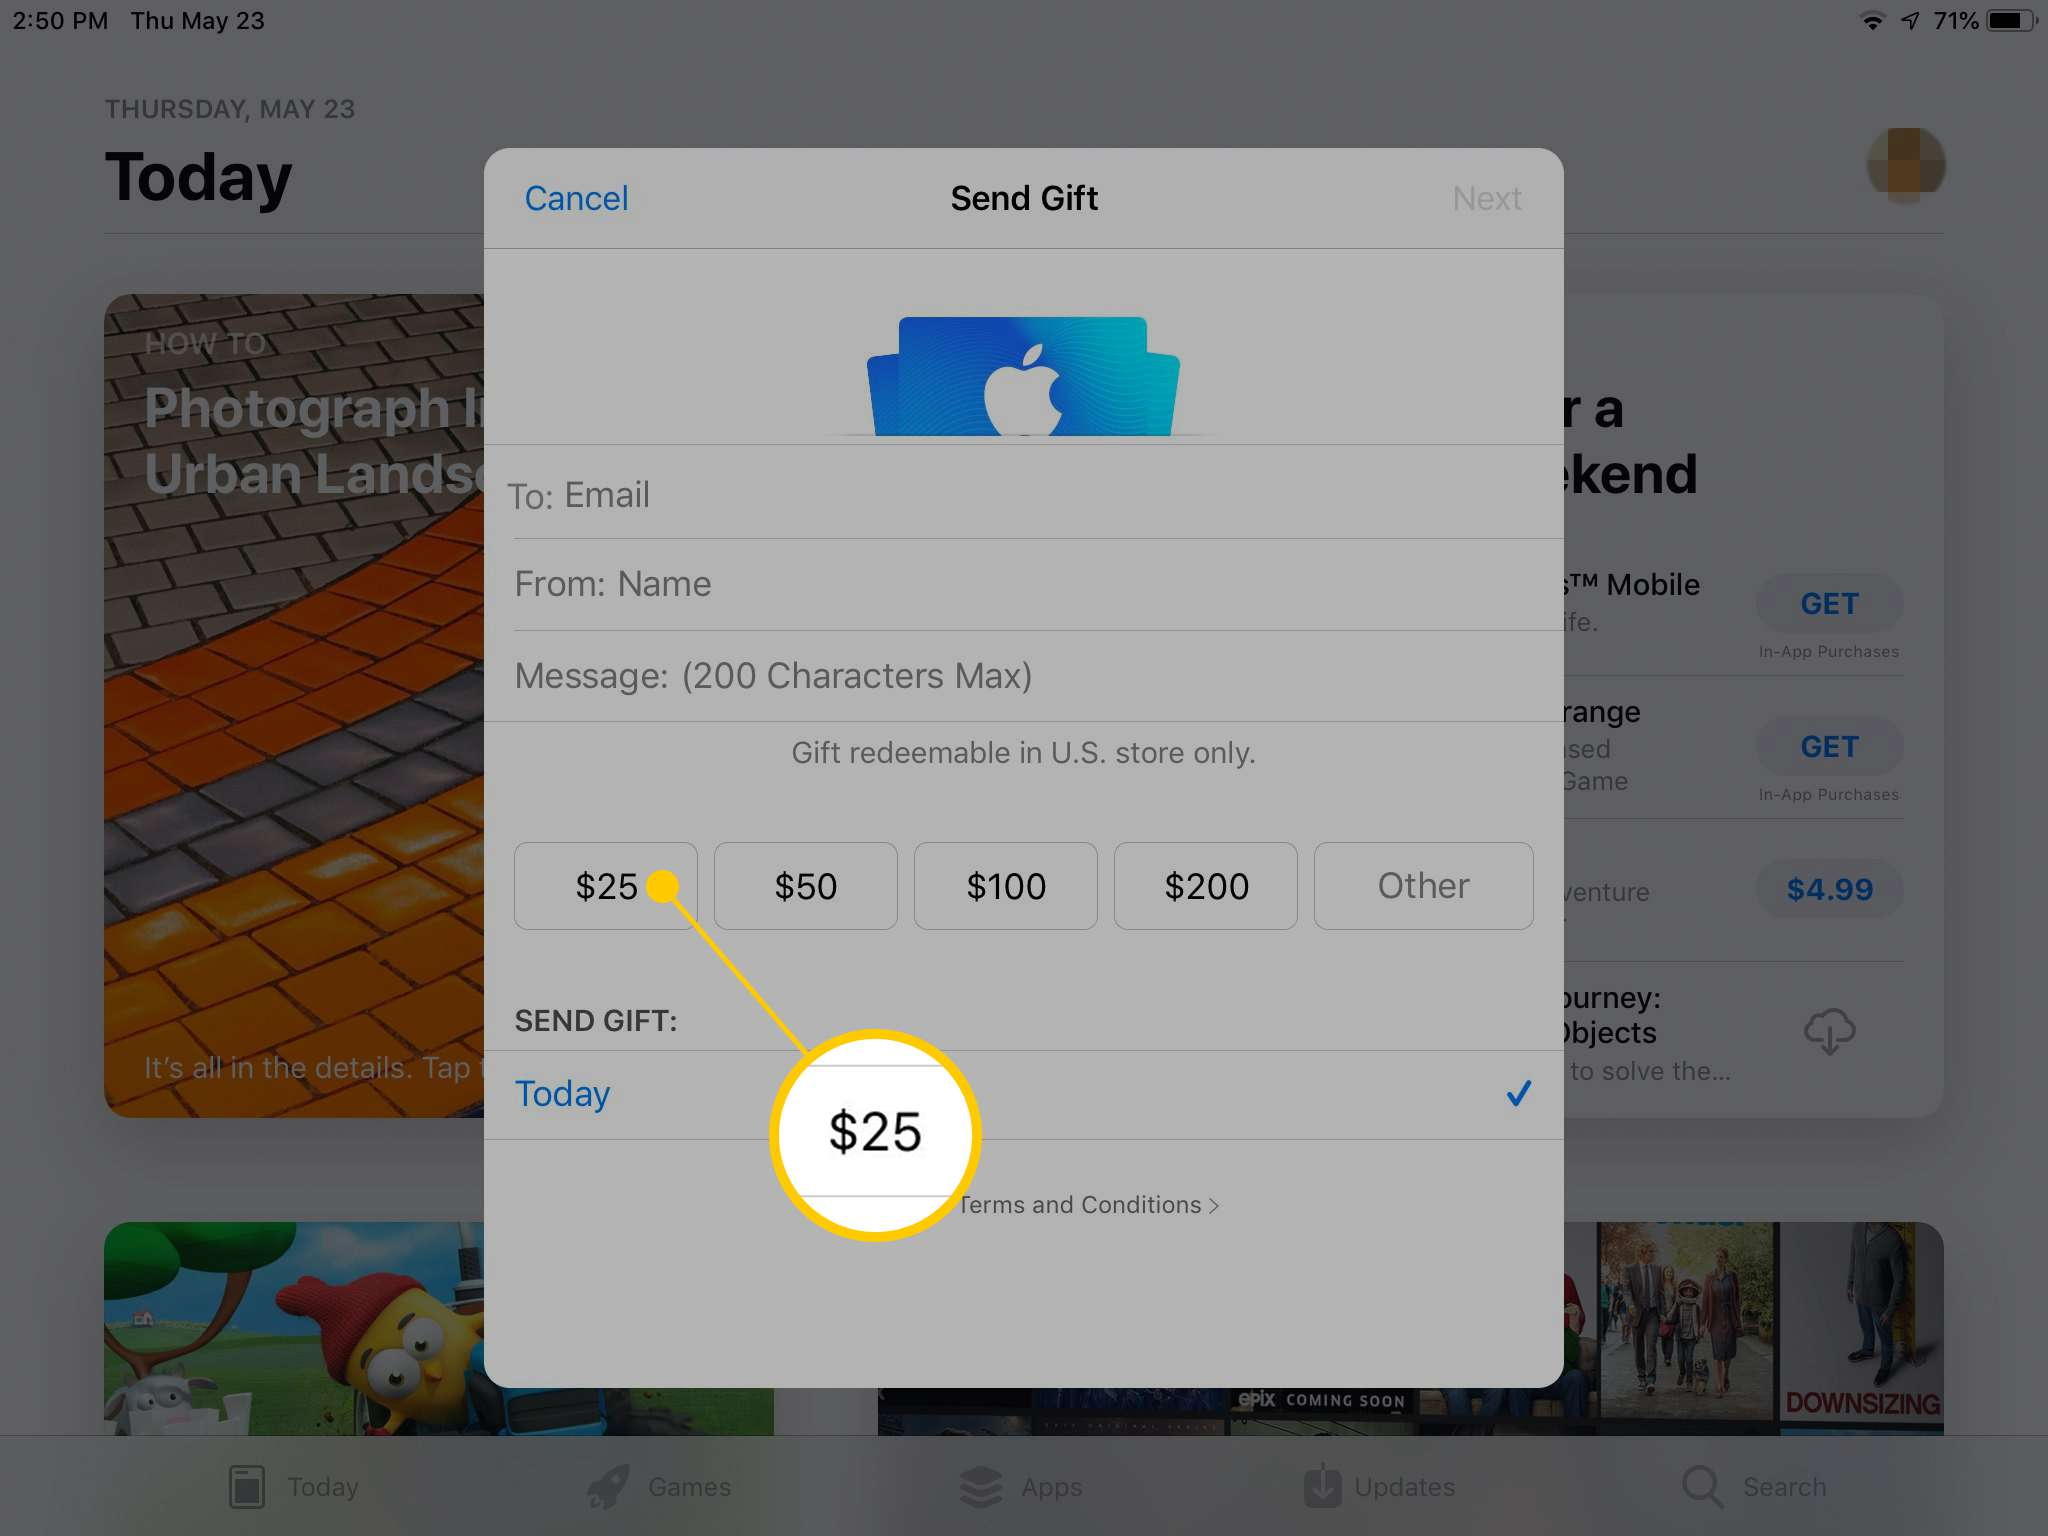 $25 amount in Send Gift dialog